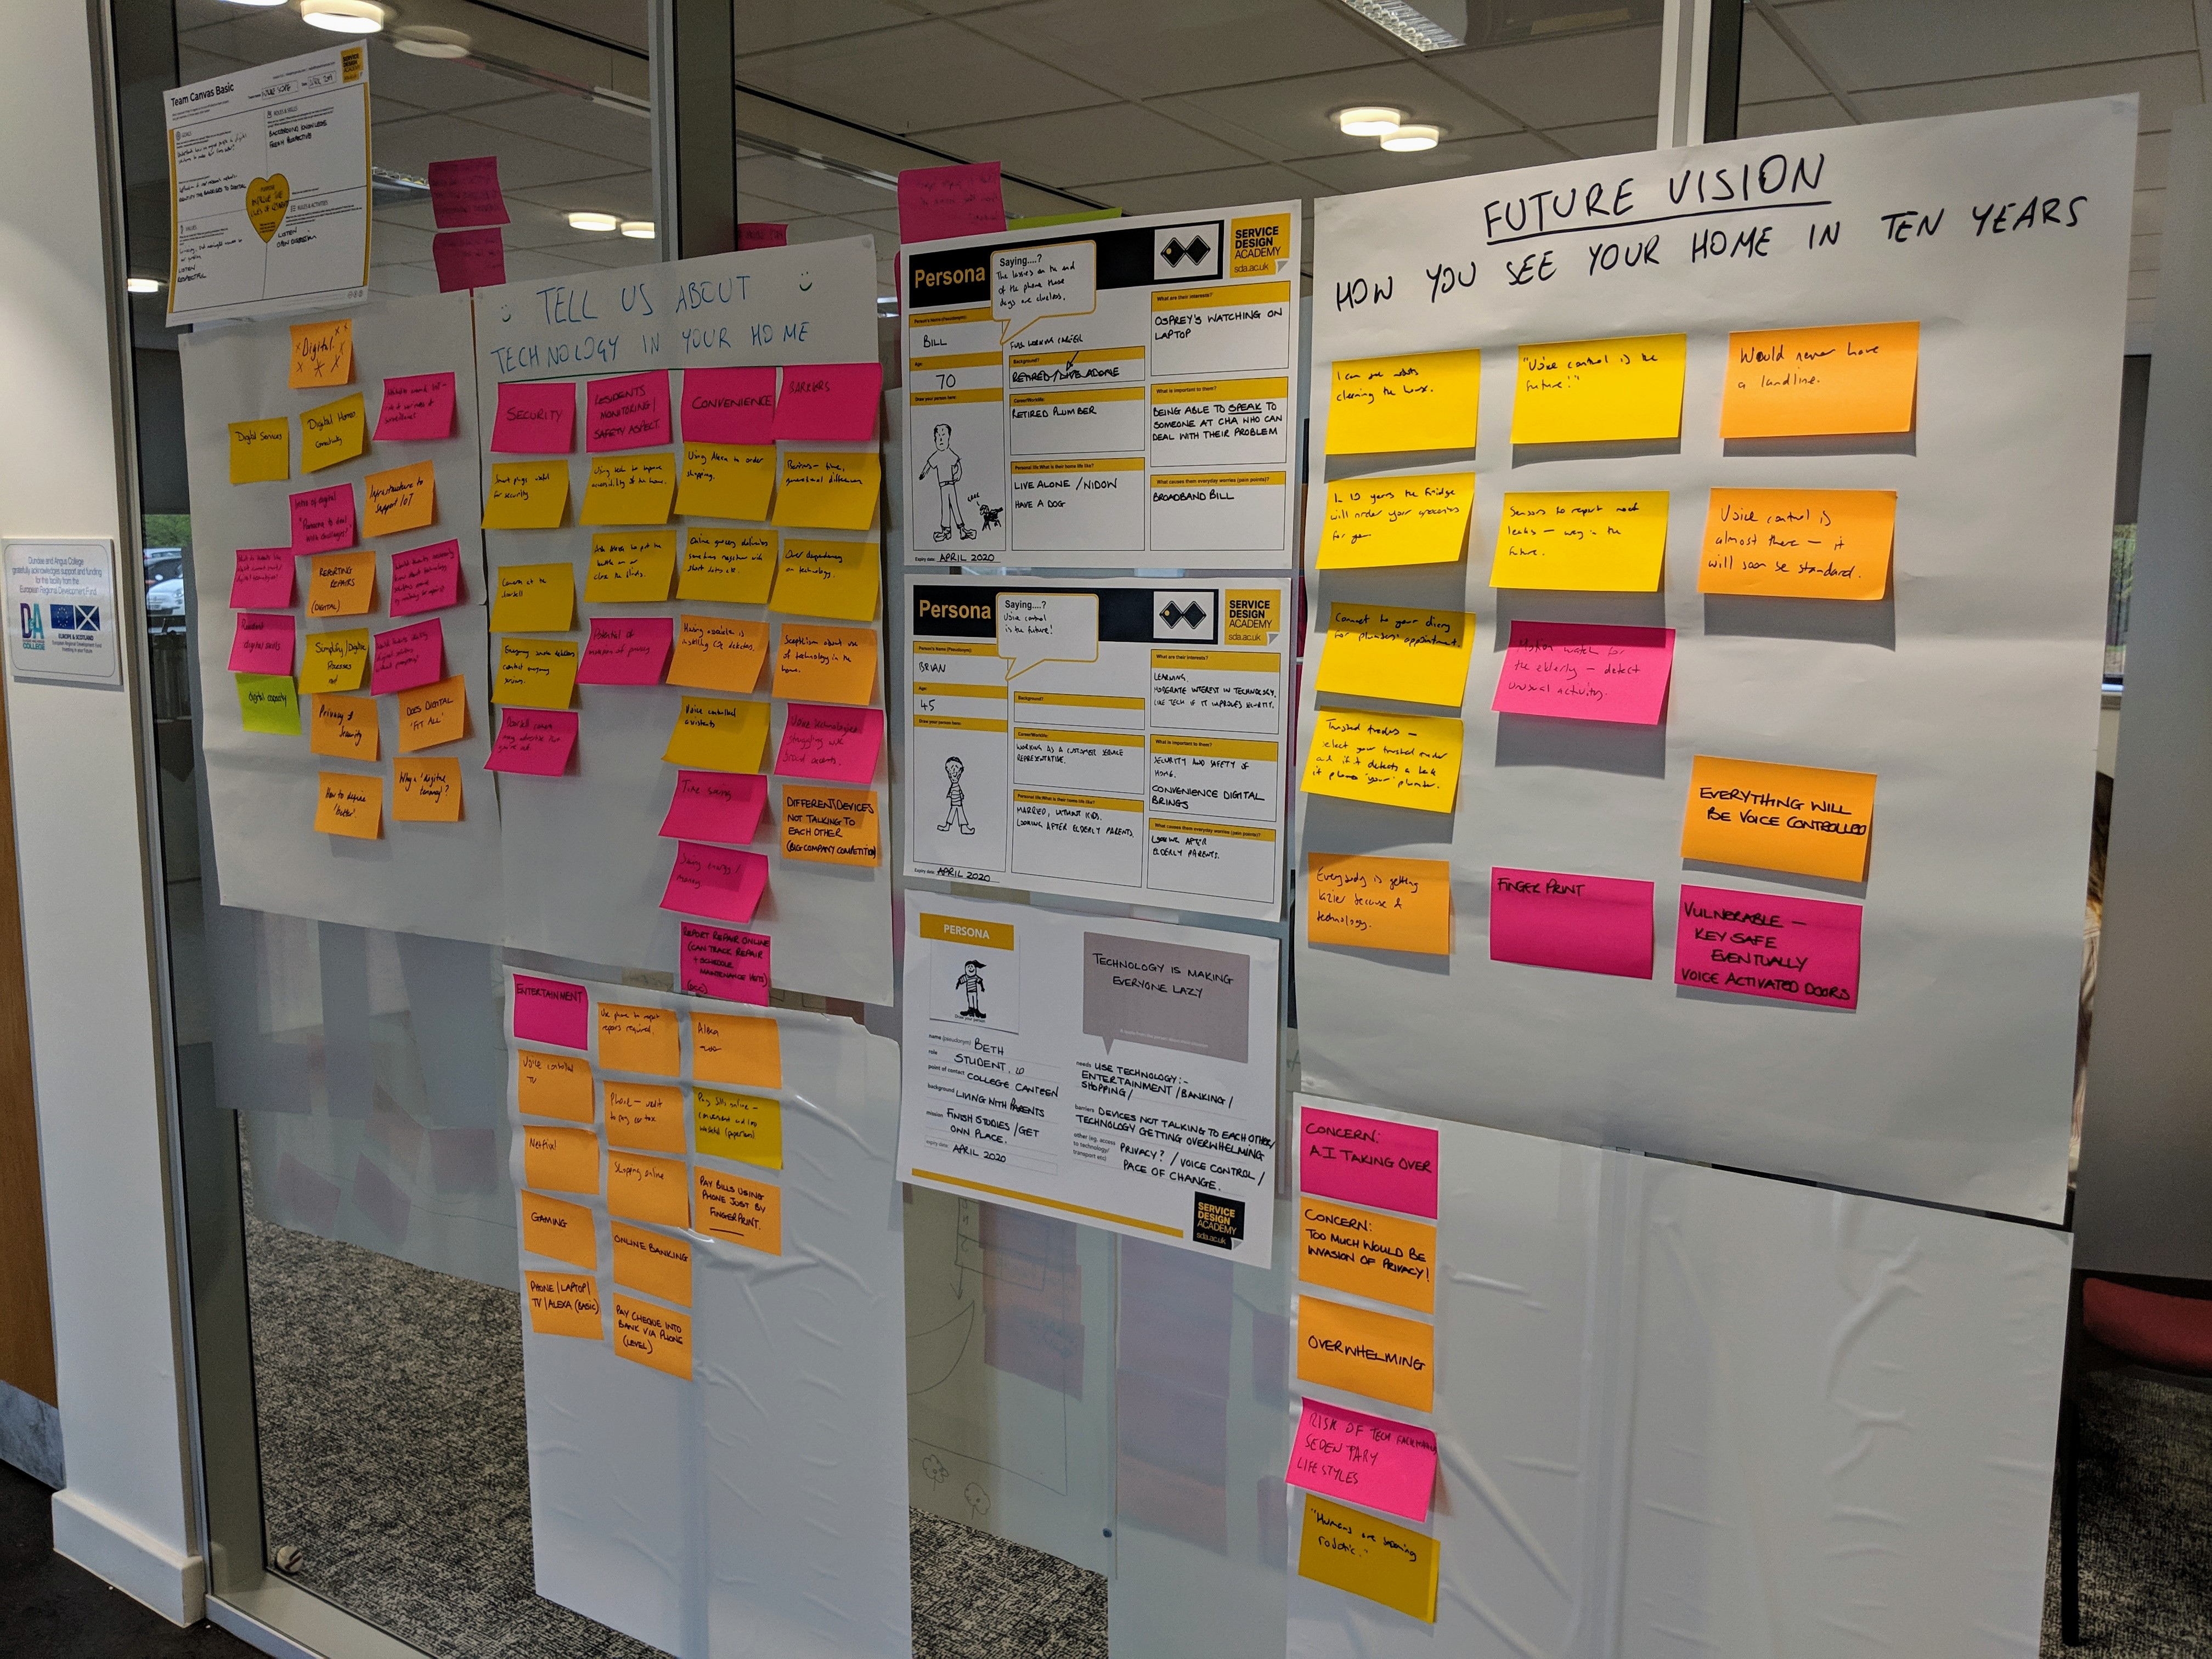 Our research wall from the bootcamp